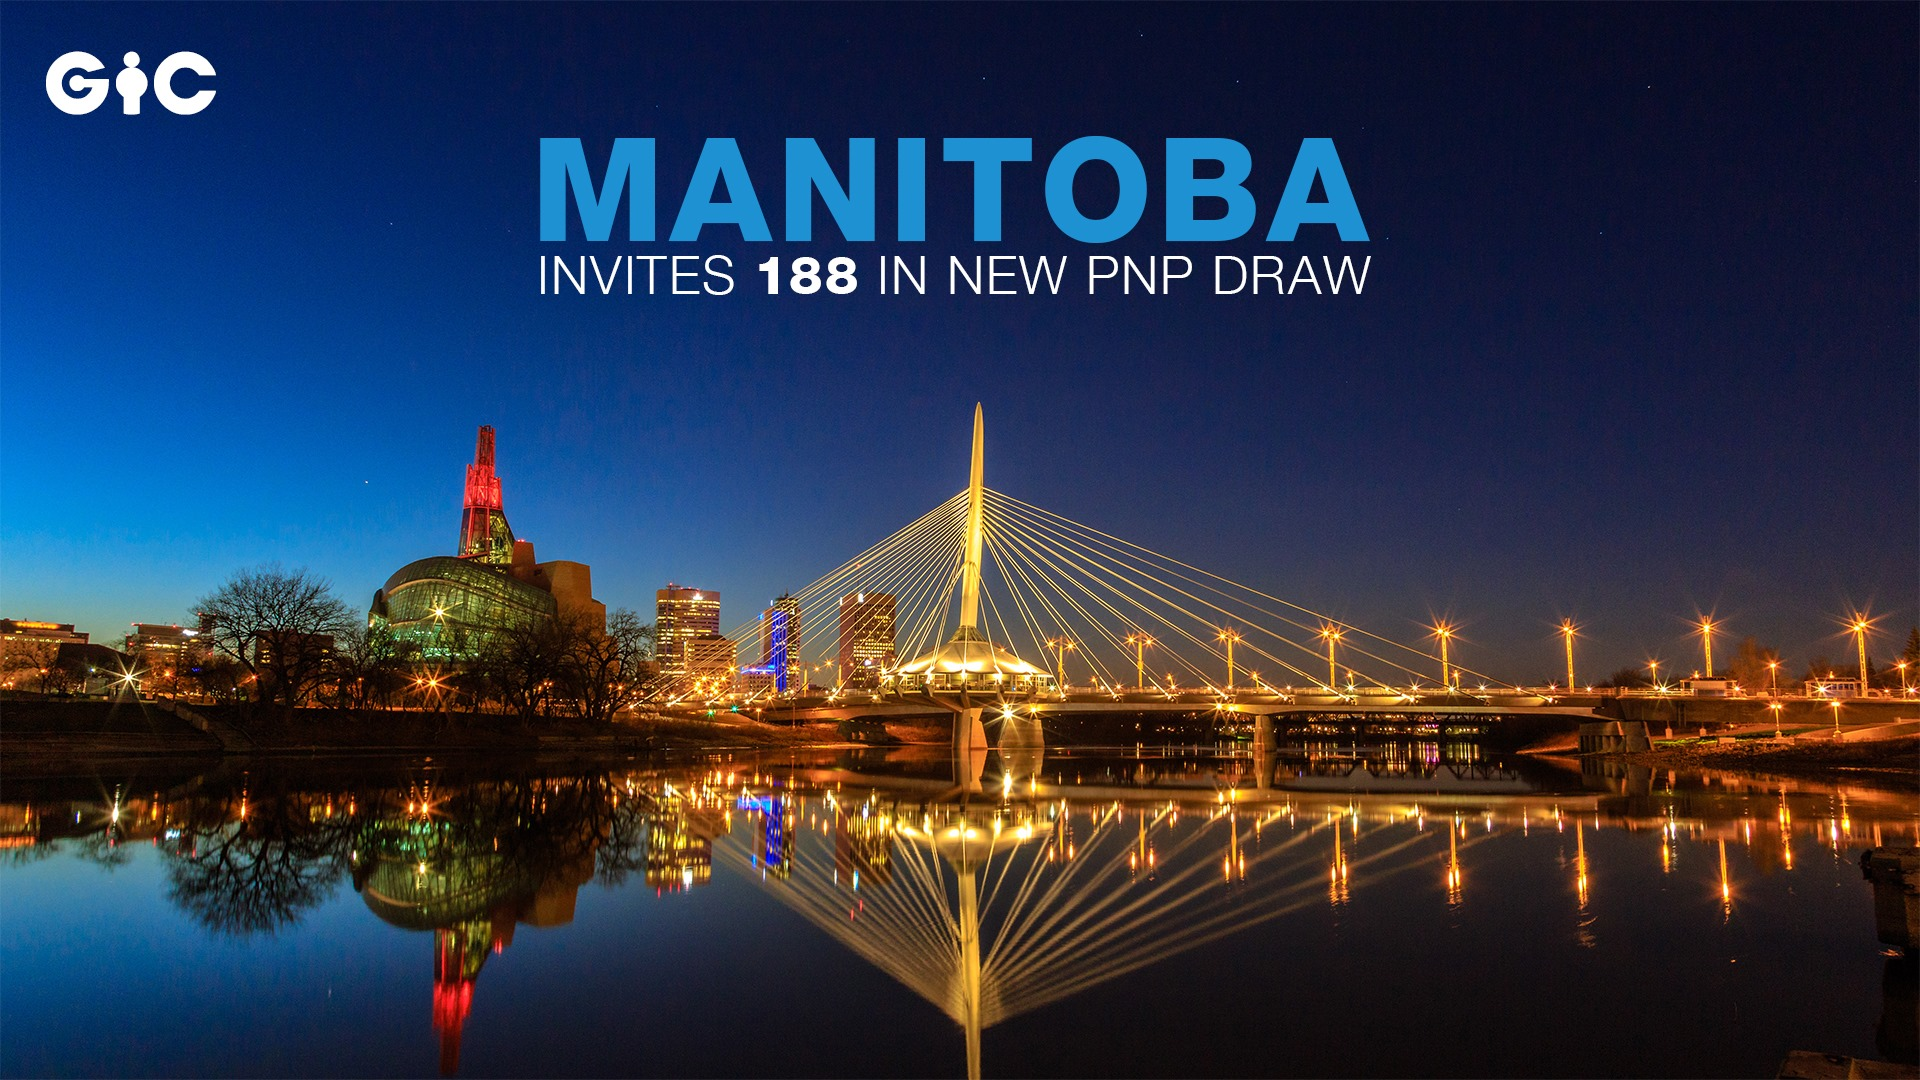 Manitoba invites 188 in new PNP draw